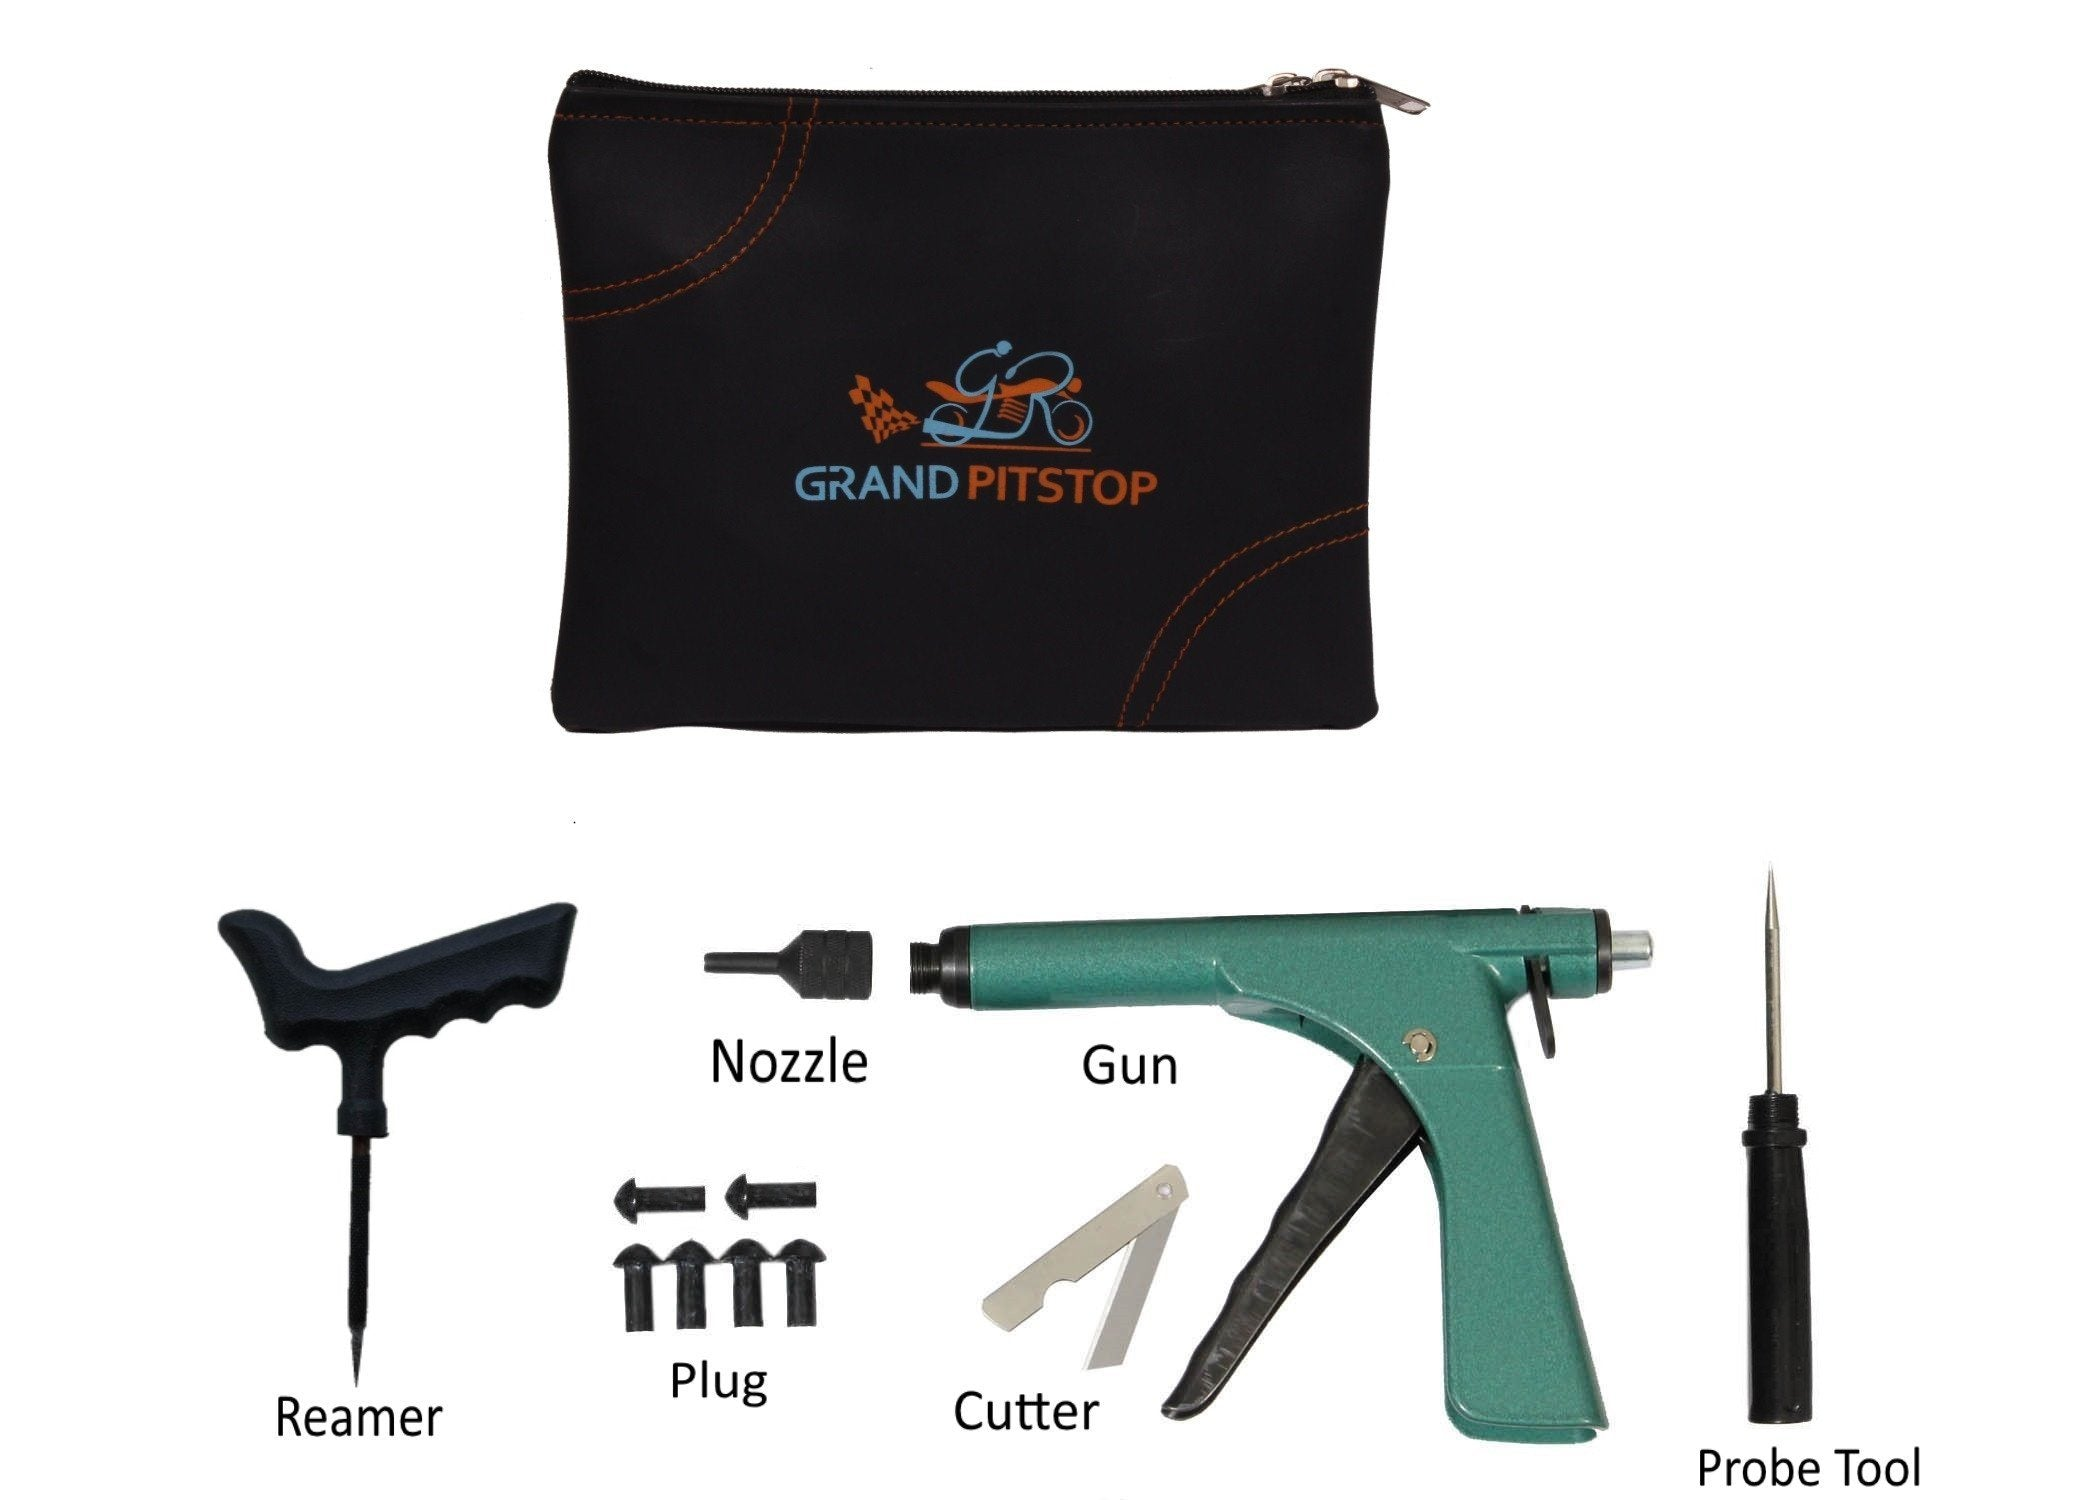 Gun - Tubeless Tyre Puncture Repair Kit